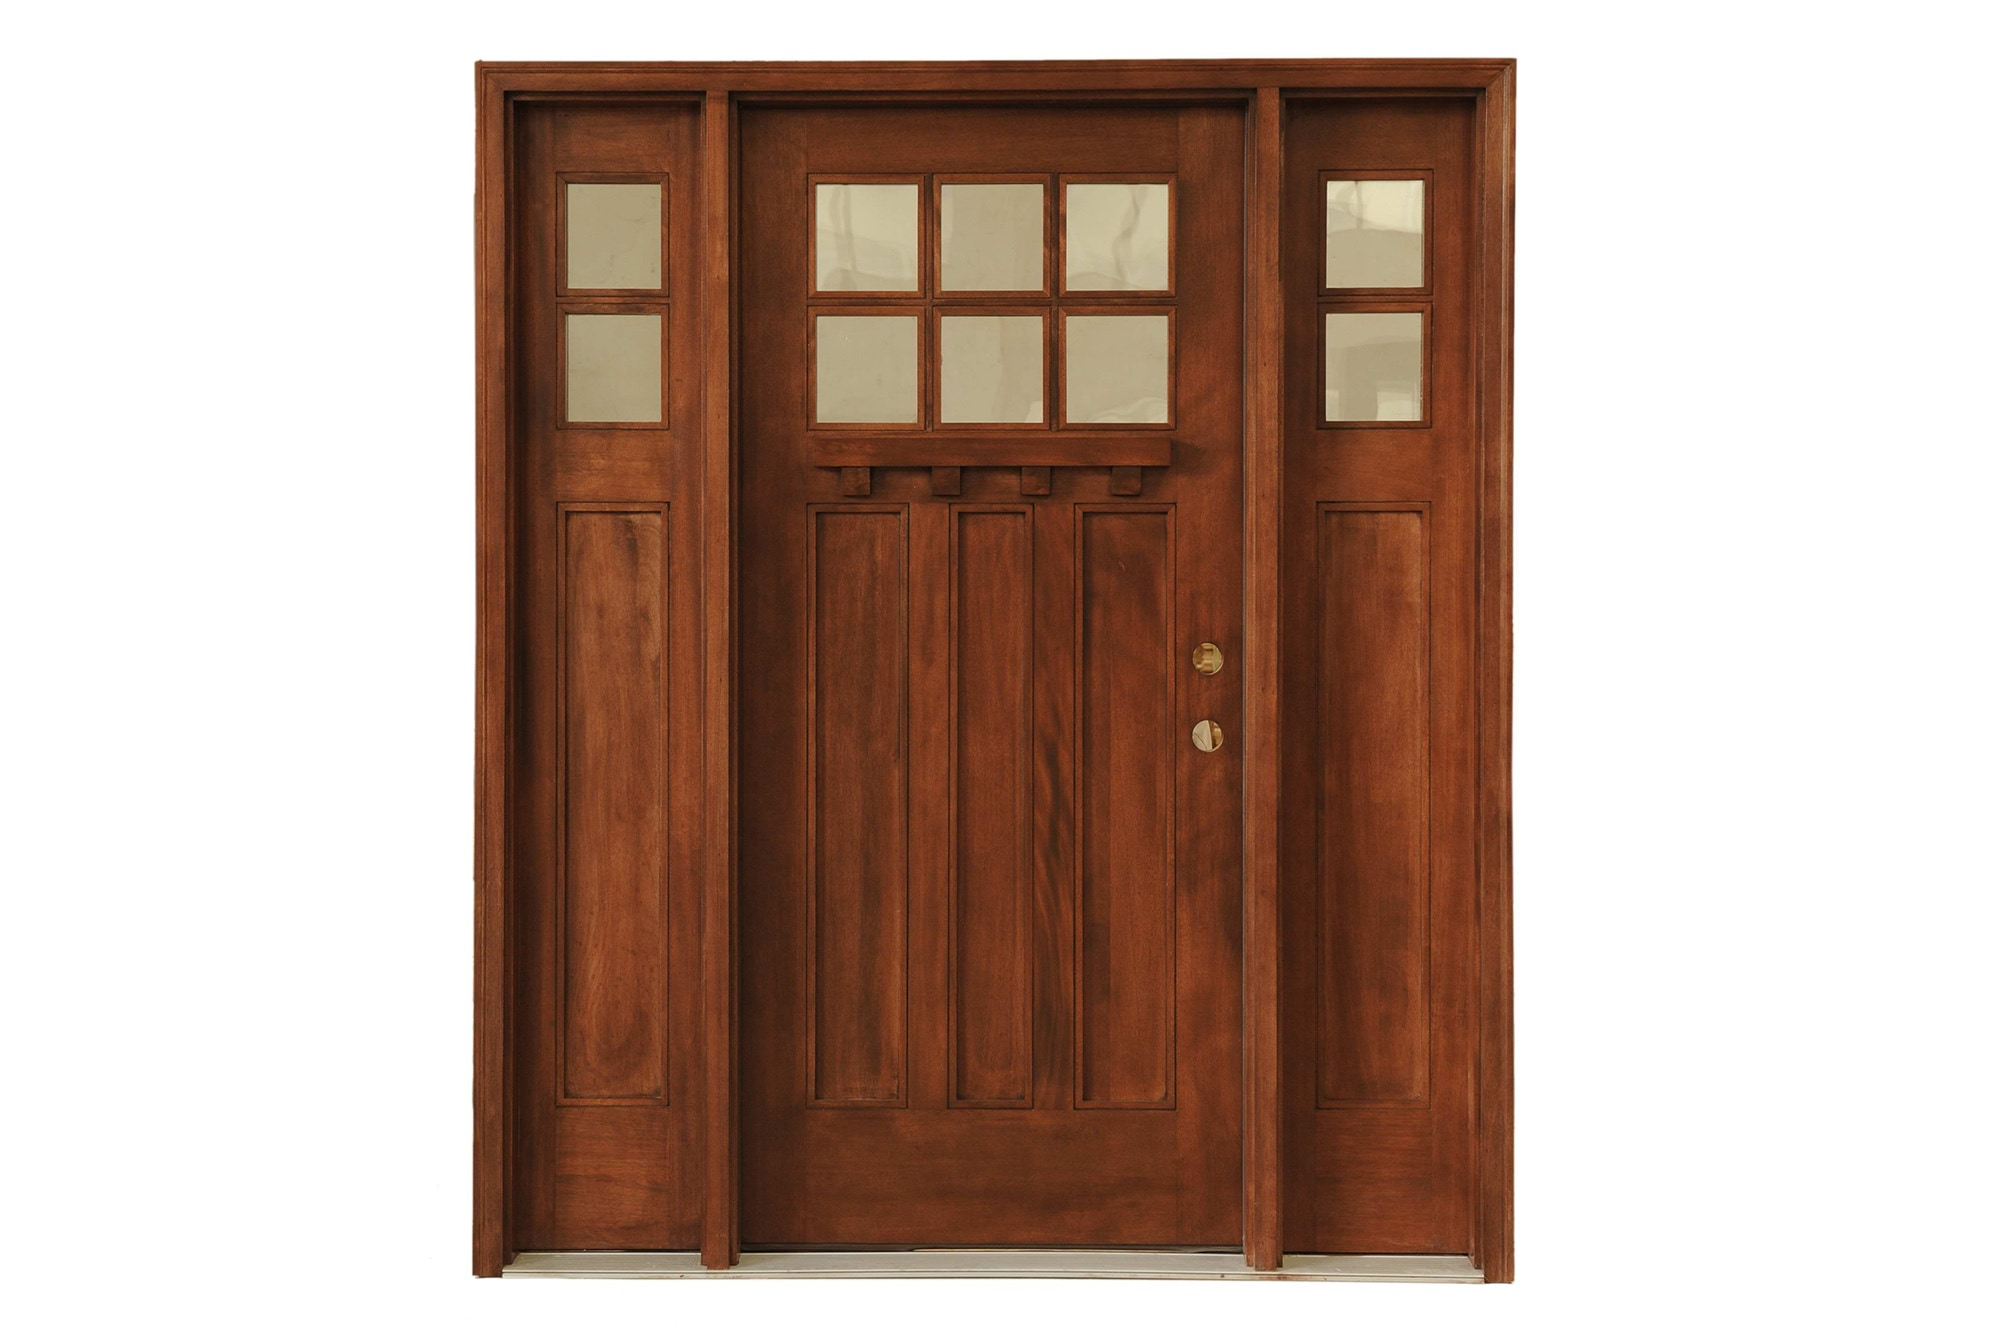 Exterior Doors exterior doors | builddirect®